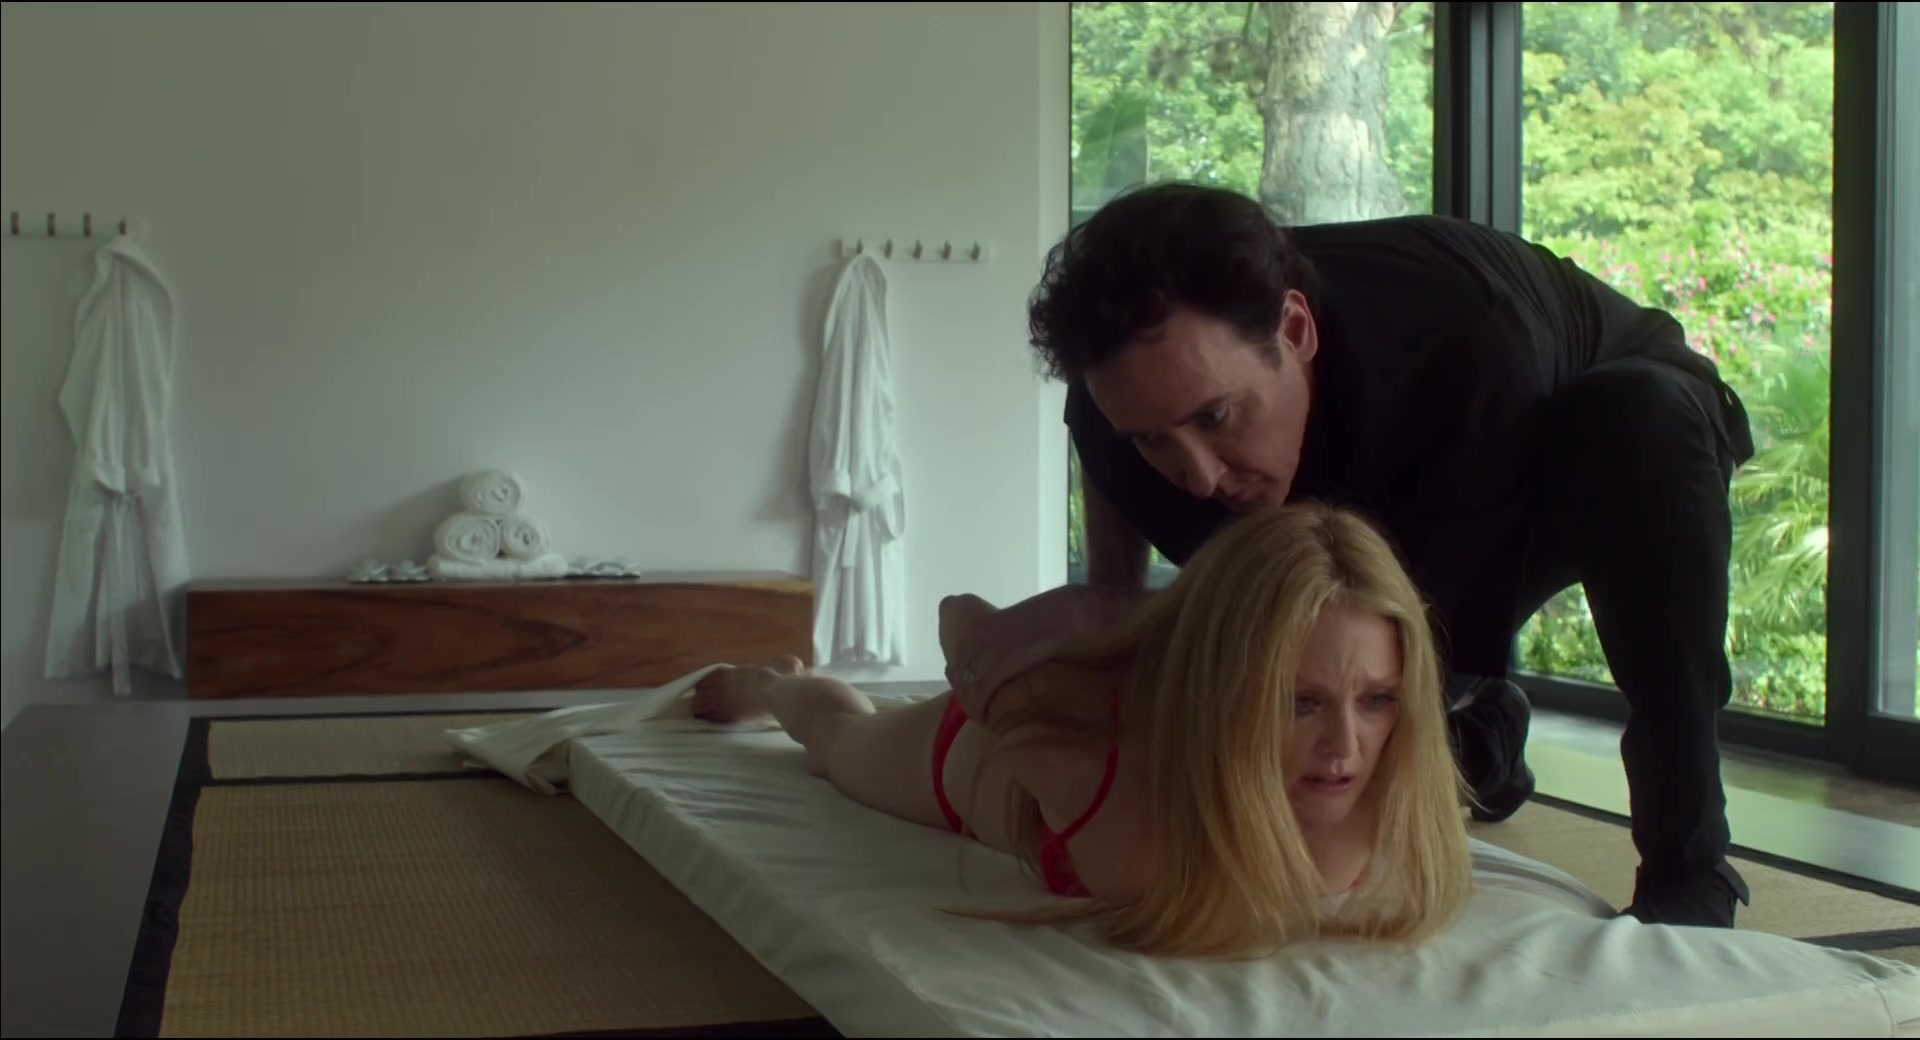 Julianne Moore Graphic Sex Scene Leaked By Hackers naked (67 pic)